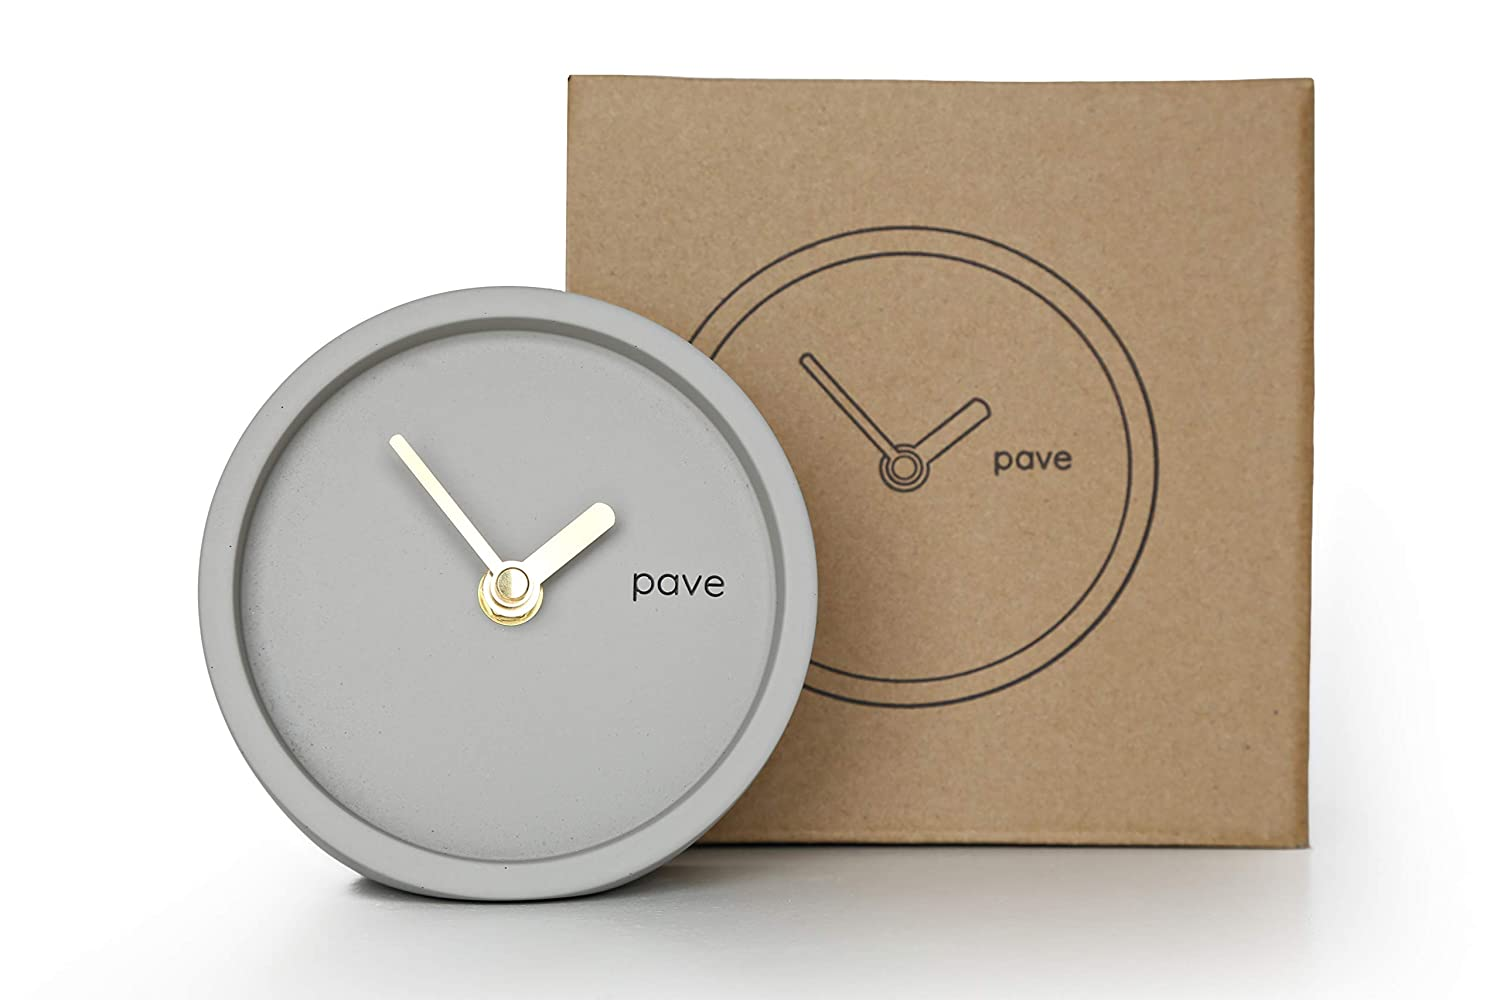 Desk Clock, Table Clock, Modern Minimal Clocks by Pave, Cement Concrete Clock Grey, Mantle Clocks Scandinavian Mantel Wall Clock, Vintage Bedside Kitchen, Industrial Silent Quartz, Gold Gray